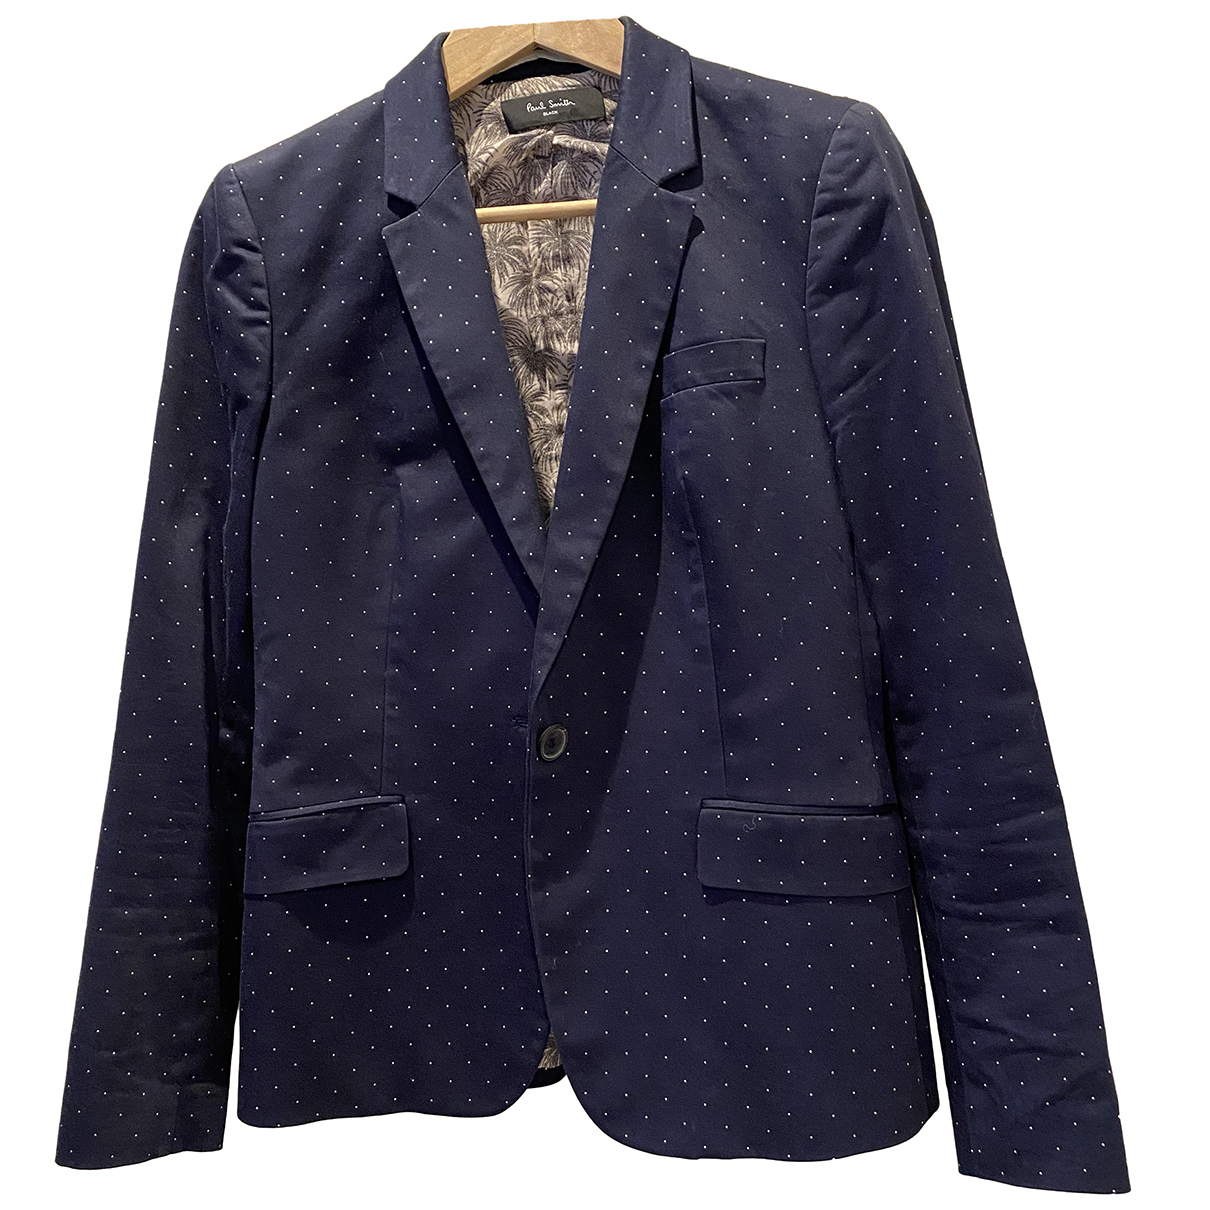 Paul Smith \N Jacke in  Blau Baumwolle